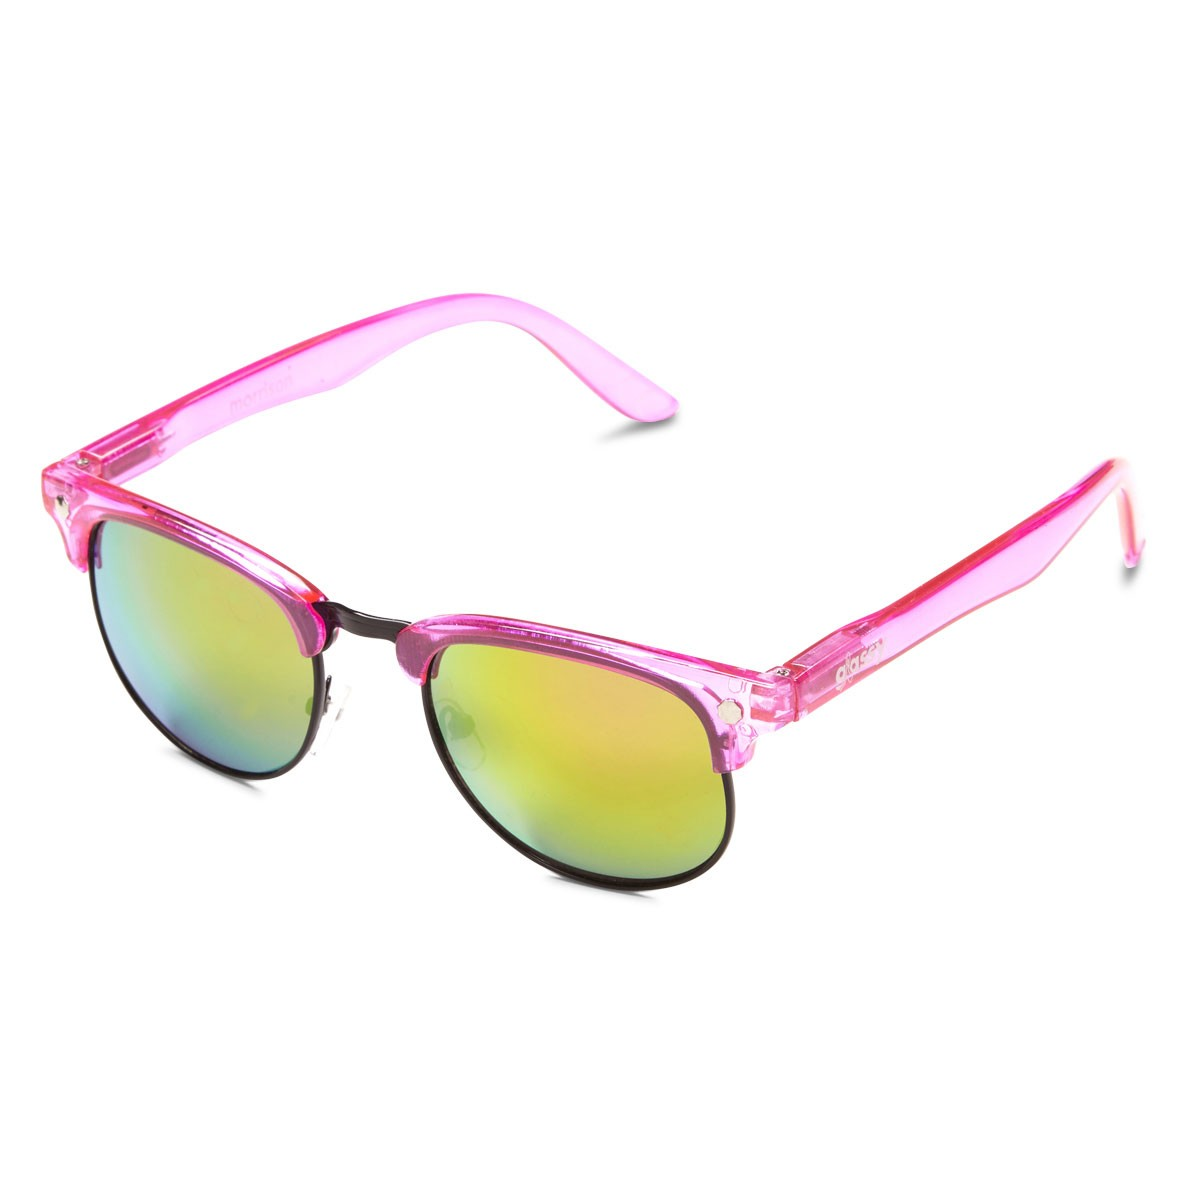 Glassy Morrison Cancer Haters Sunglasses - Pink/Pink Mirror